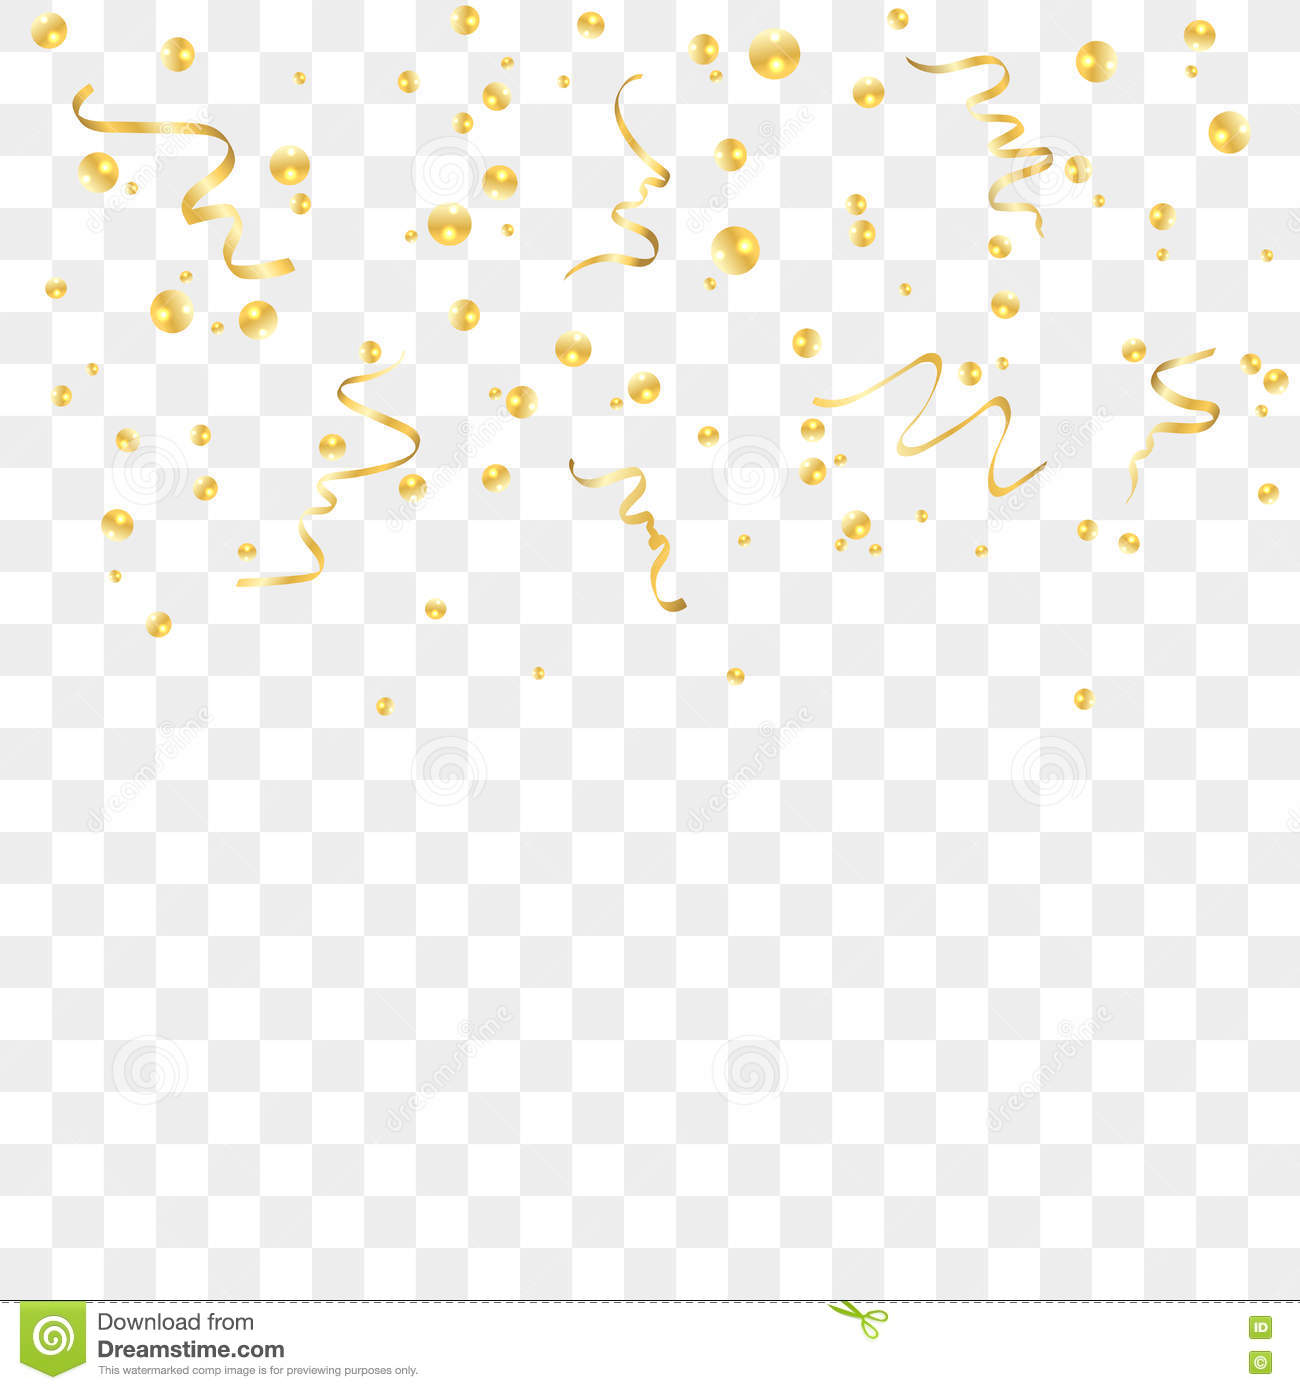 1300x1390 Transparent Background Png Christmas Gold Confetti Svg Black And